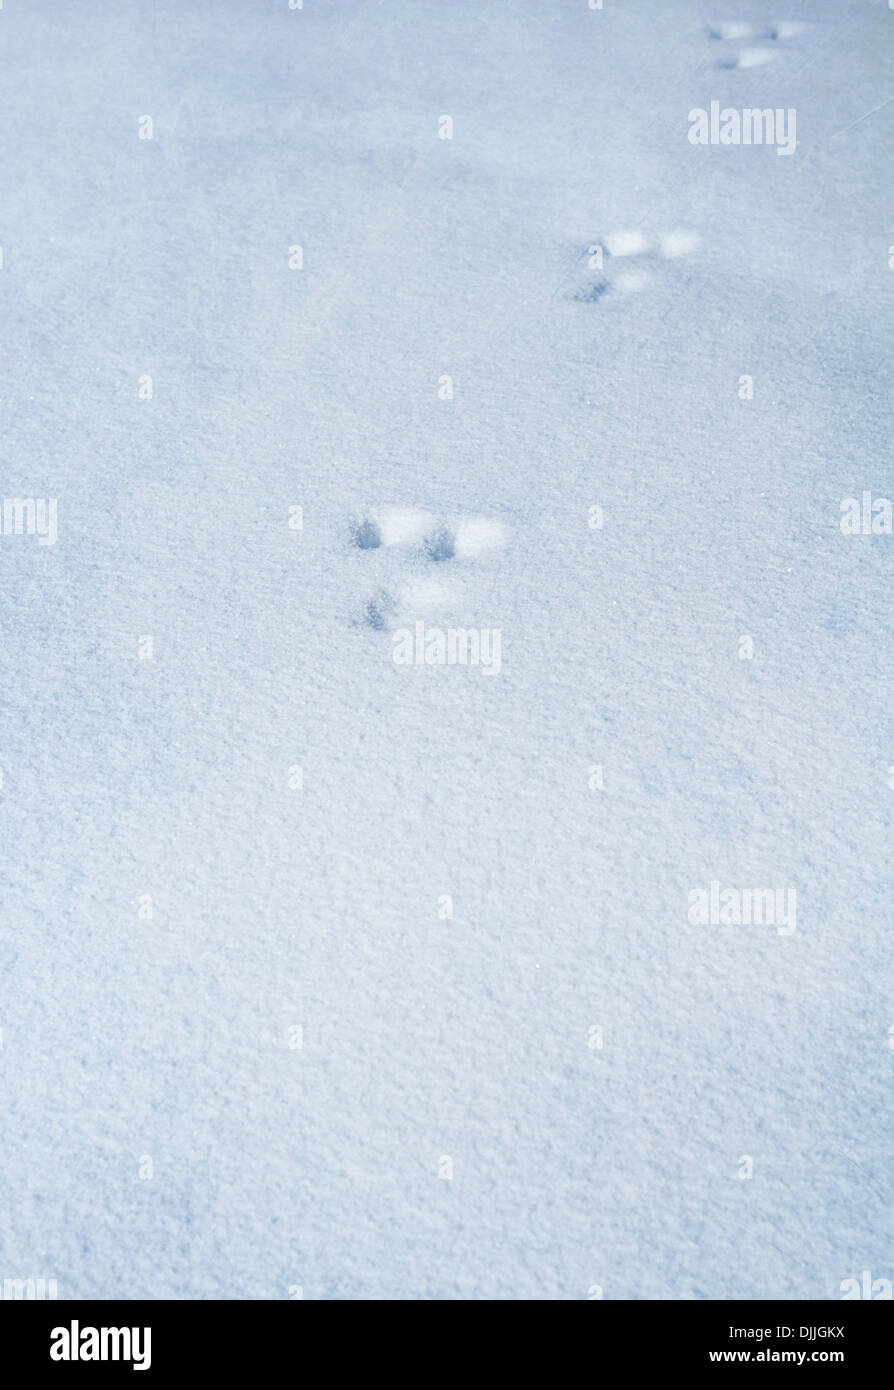 Animal footprints in the snow at Yellowstone National Park, United States - Stock Image